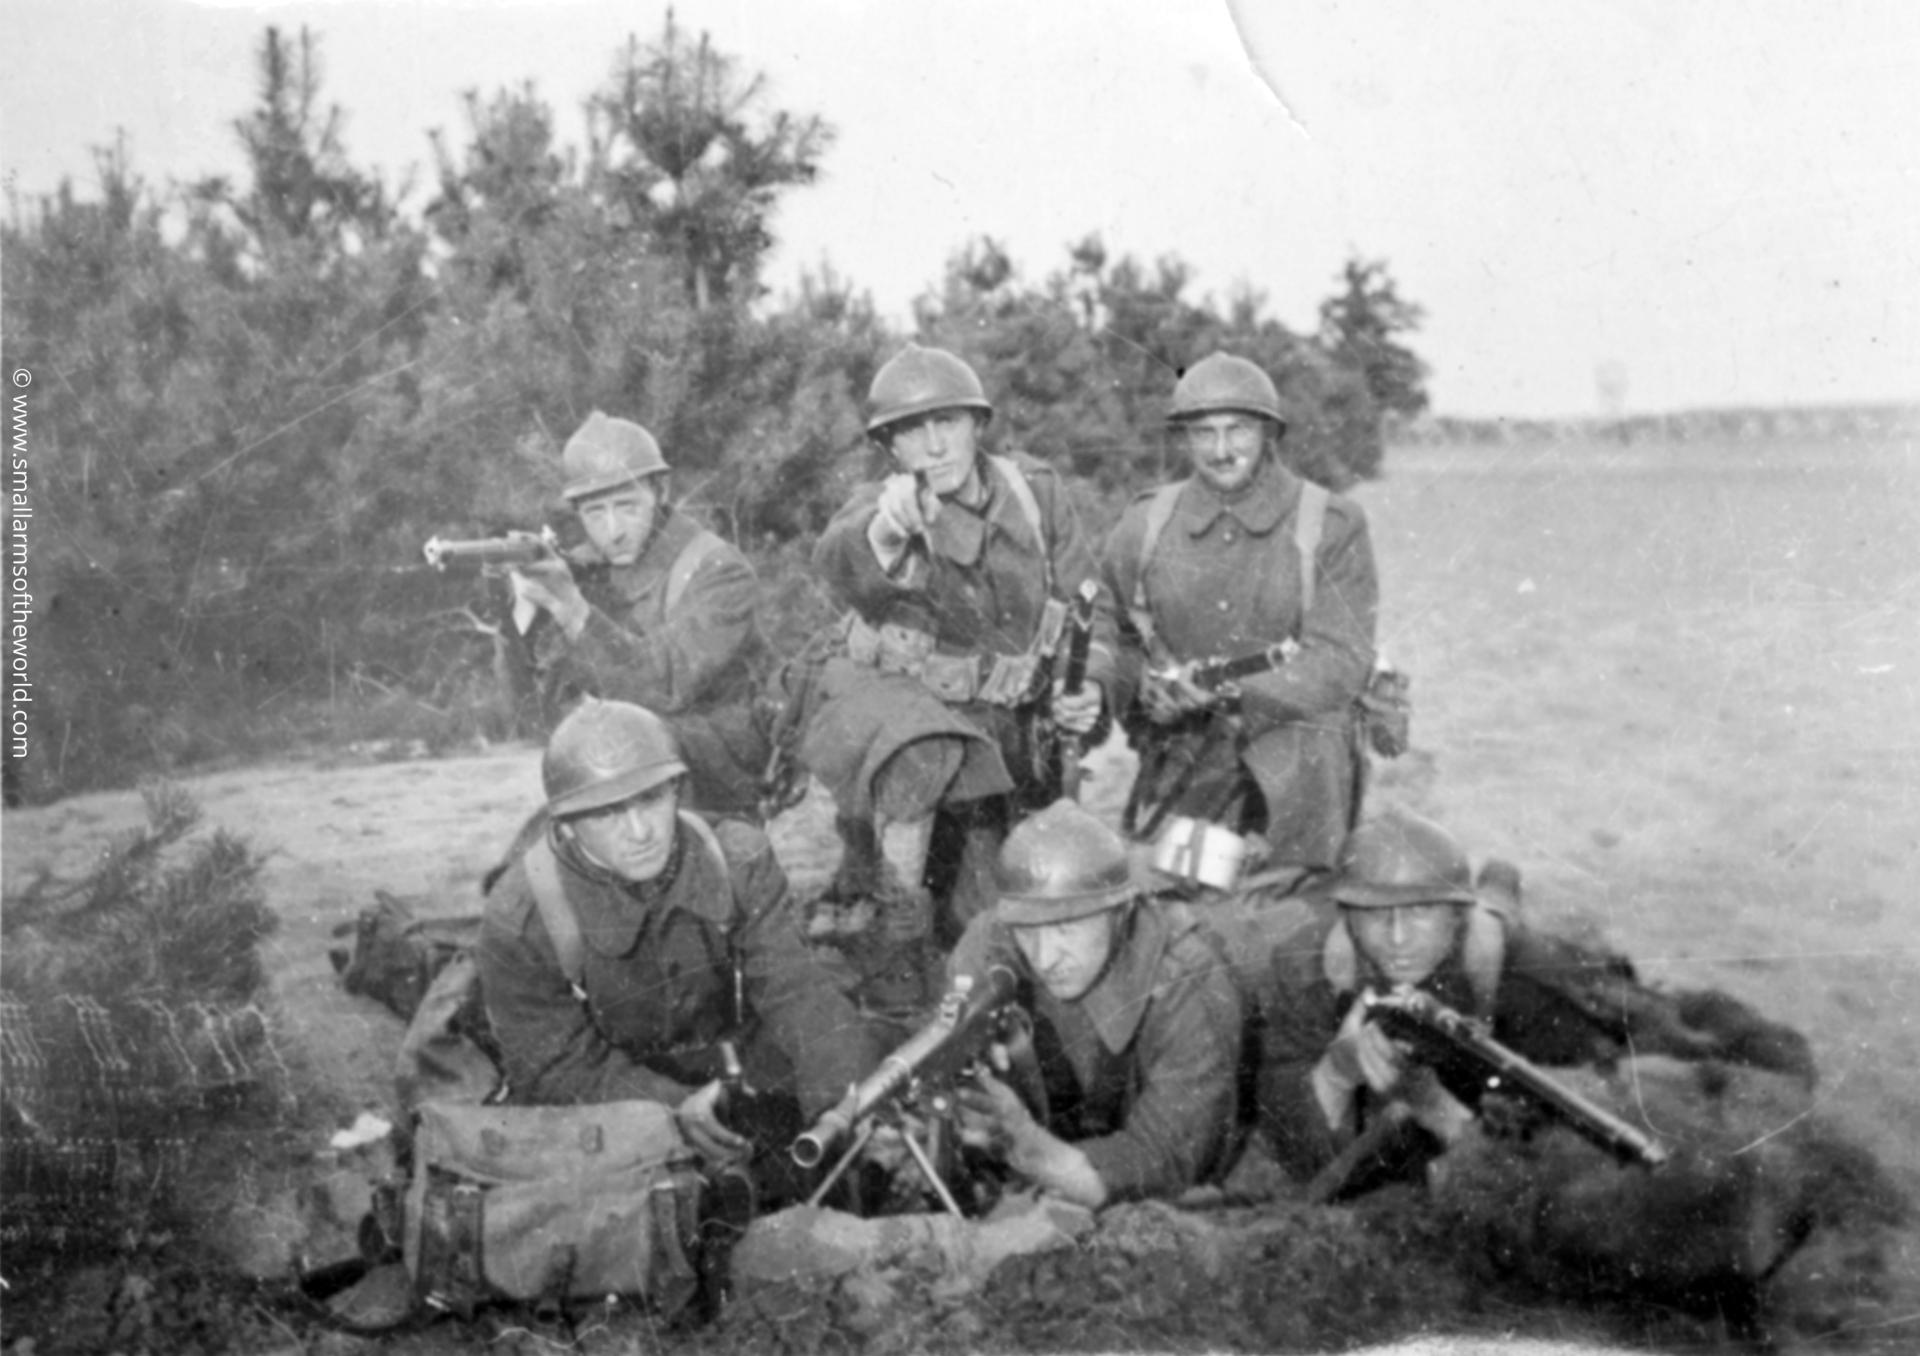 A group of six Belgian soldiers with a Belgian caliber Chauchat 1915 machine gun and Mauser rifles.